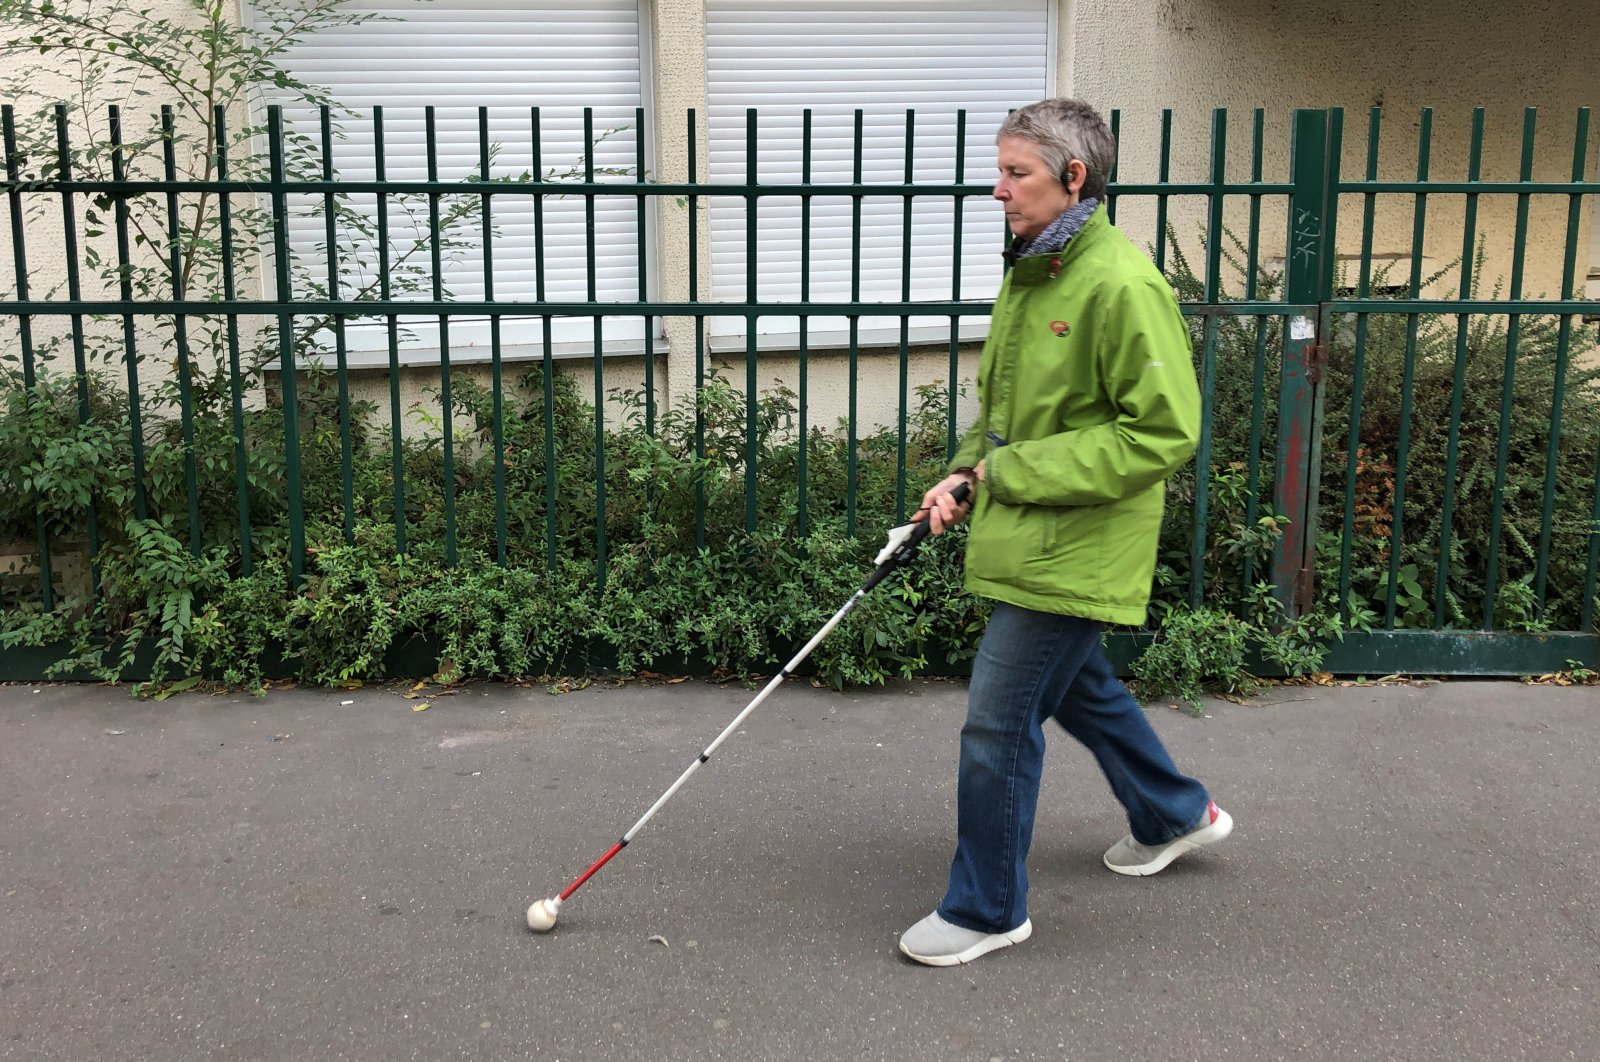 Laurence Jamet, Parisian woman blind since birth, walks with a cane and the electronic device, called Rango, invented by the Lyon-based startup Gosense, which uses sound and augmented reality to warn visually impaired people before a collision can occur, during an interview with Reuters in Paris, France, Sept. 21, 2021. (REUTERS Photo)